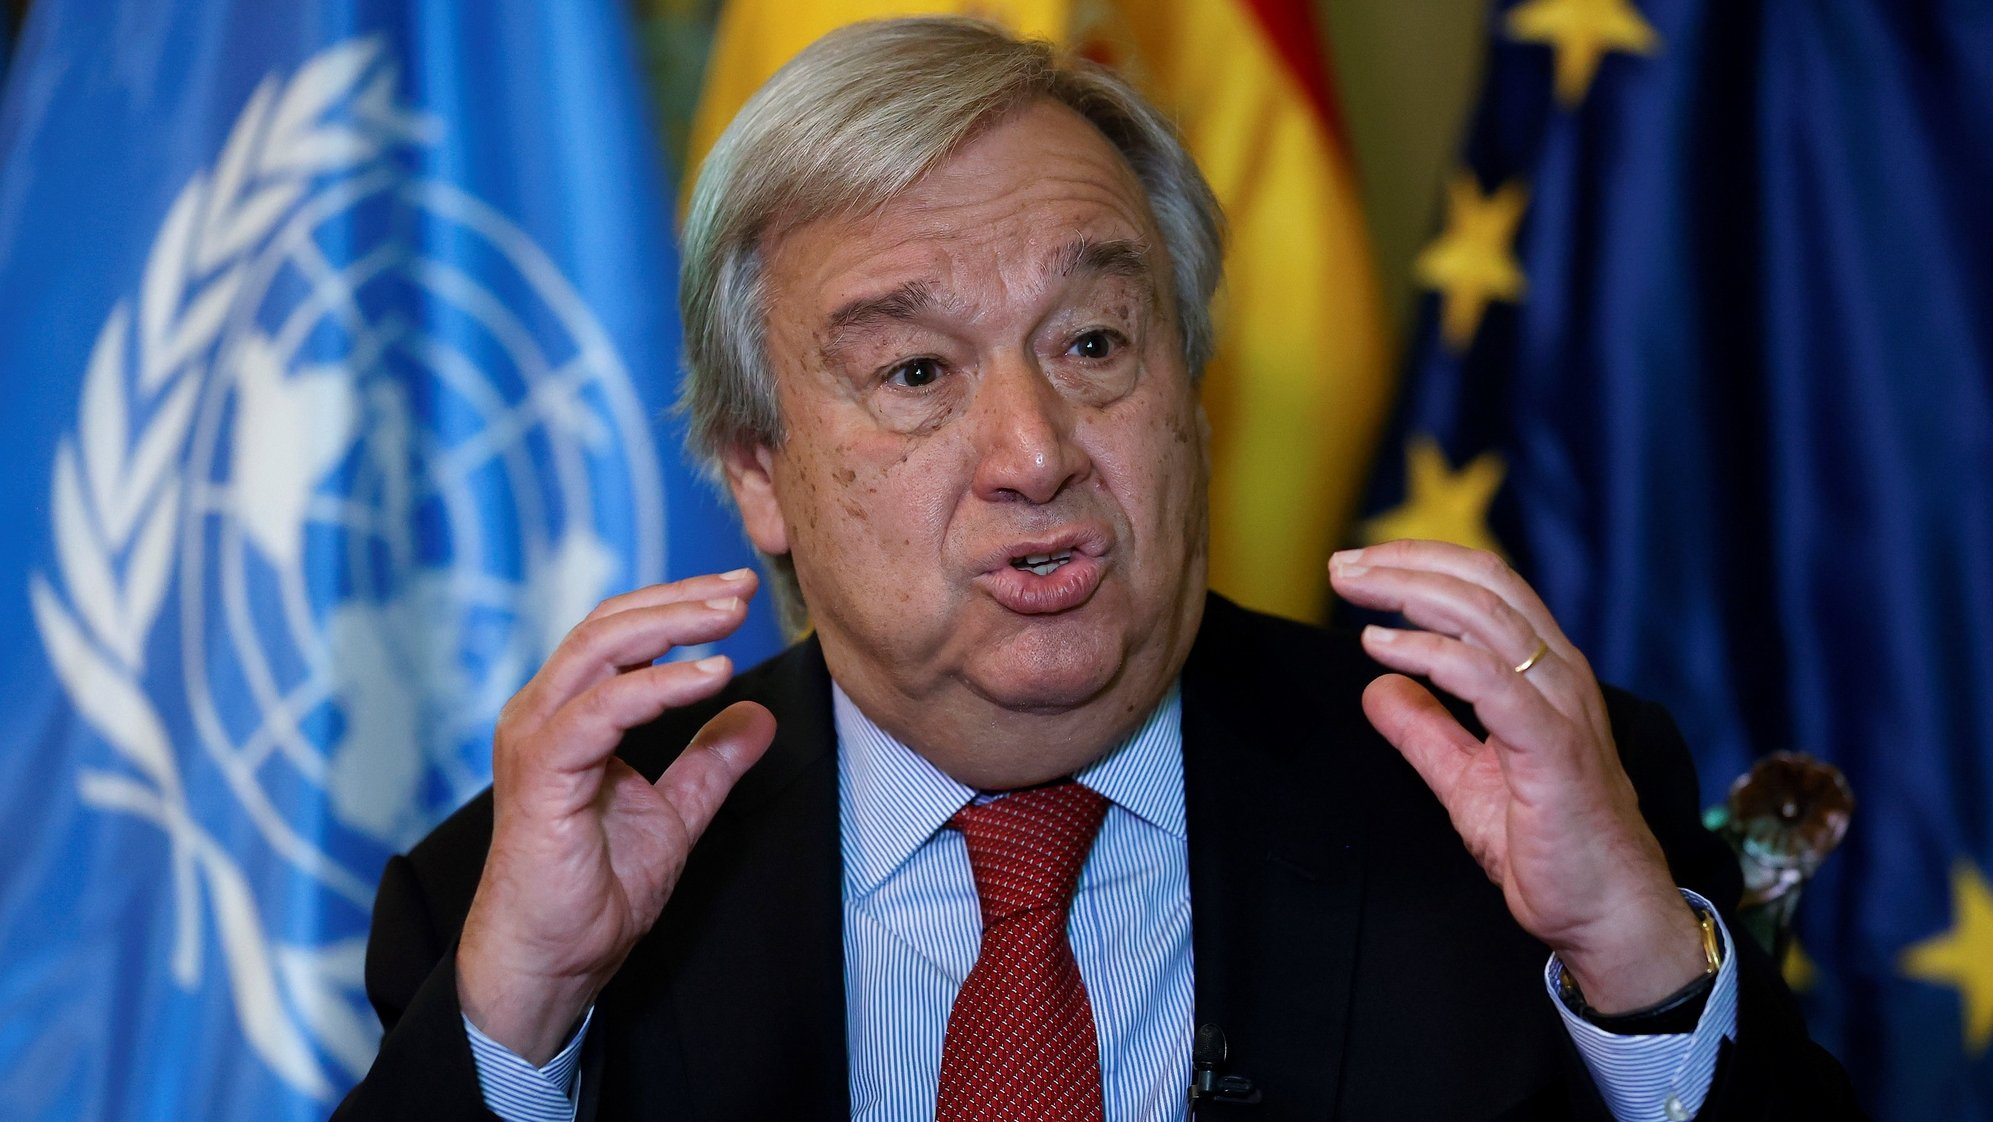 epa09319785 UN Secretary General Antonio Guterres during an interview with Agencia Efe in Madrid, Spain, 02 July 2021 (issued on 03 July 2021). Guterres considers that 'Time to take decisions to fight against climate change is running out'.  EPA/Chema Moya